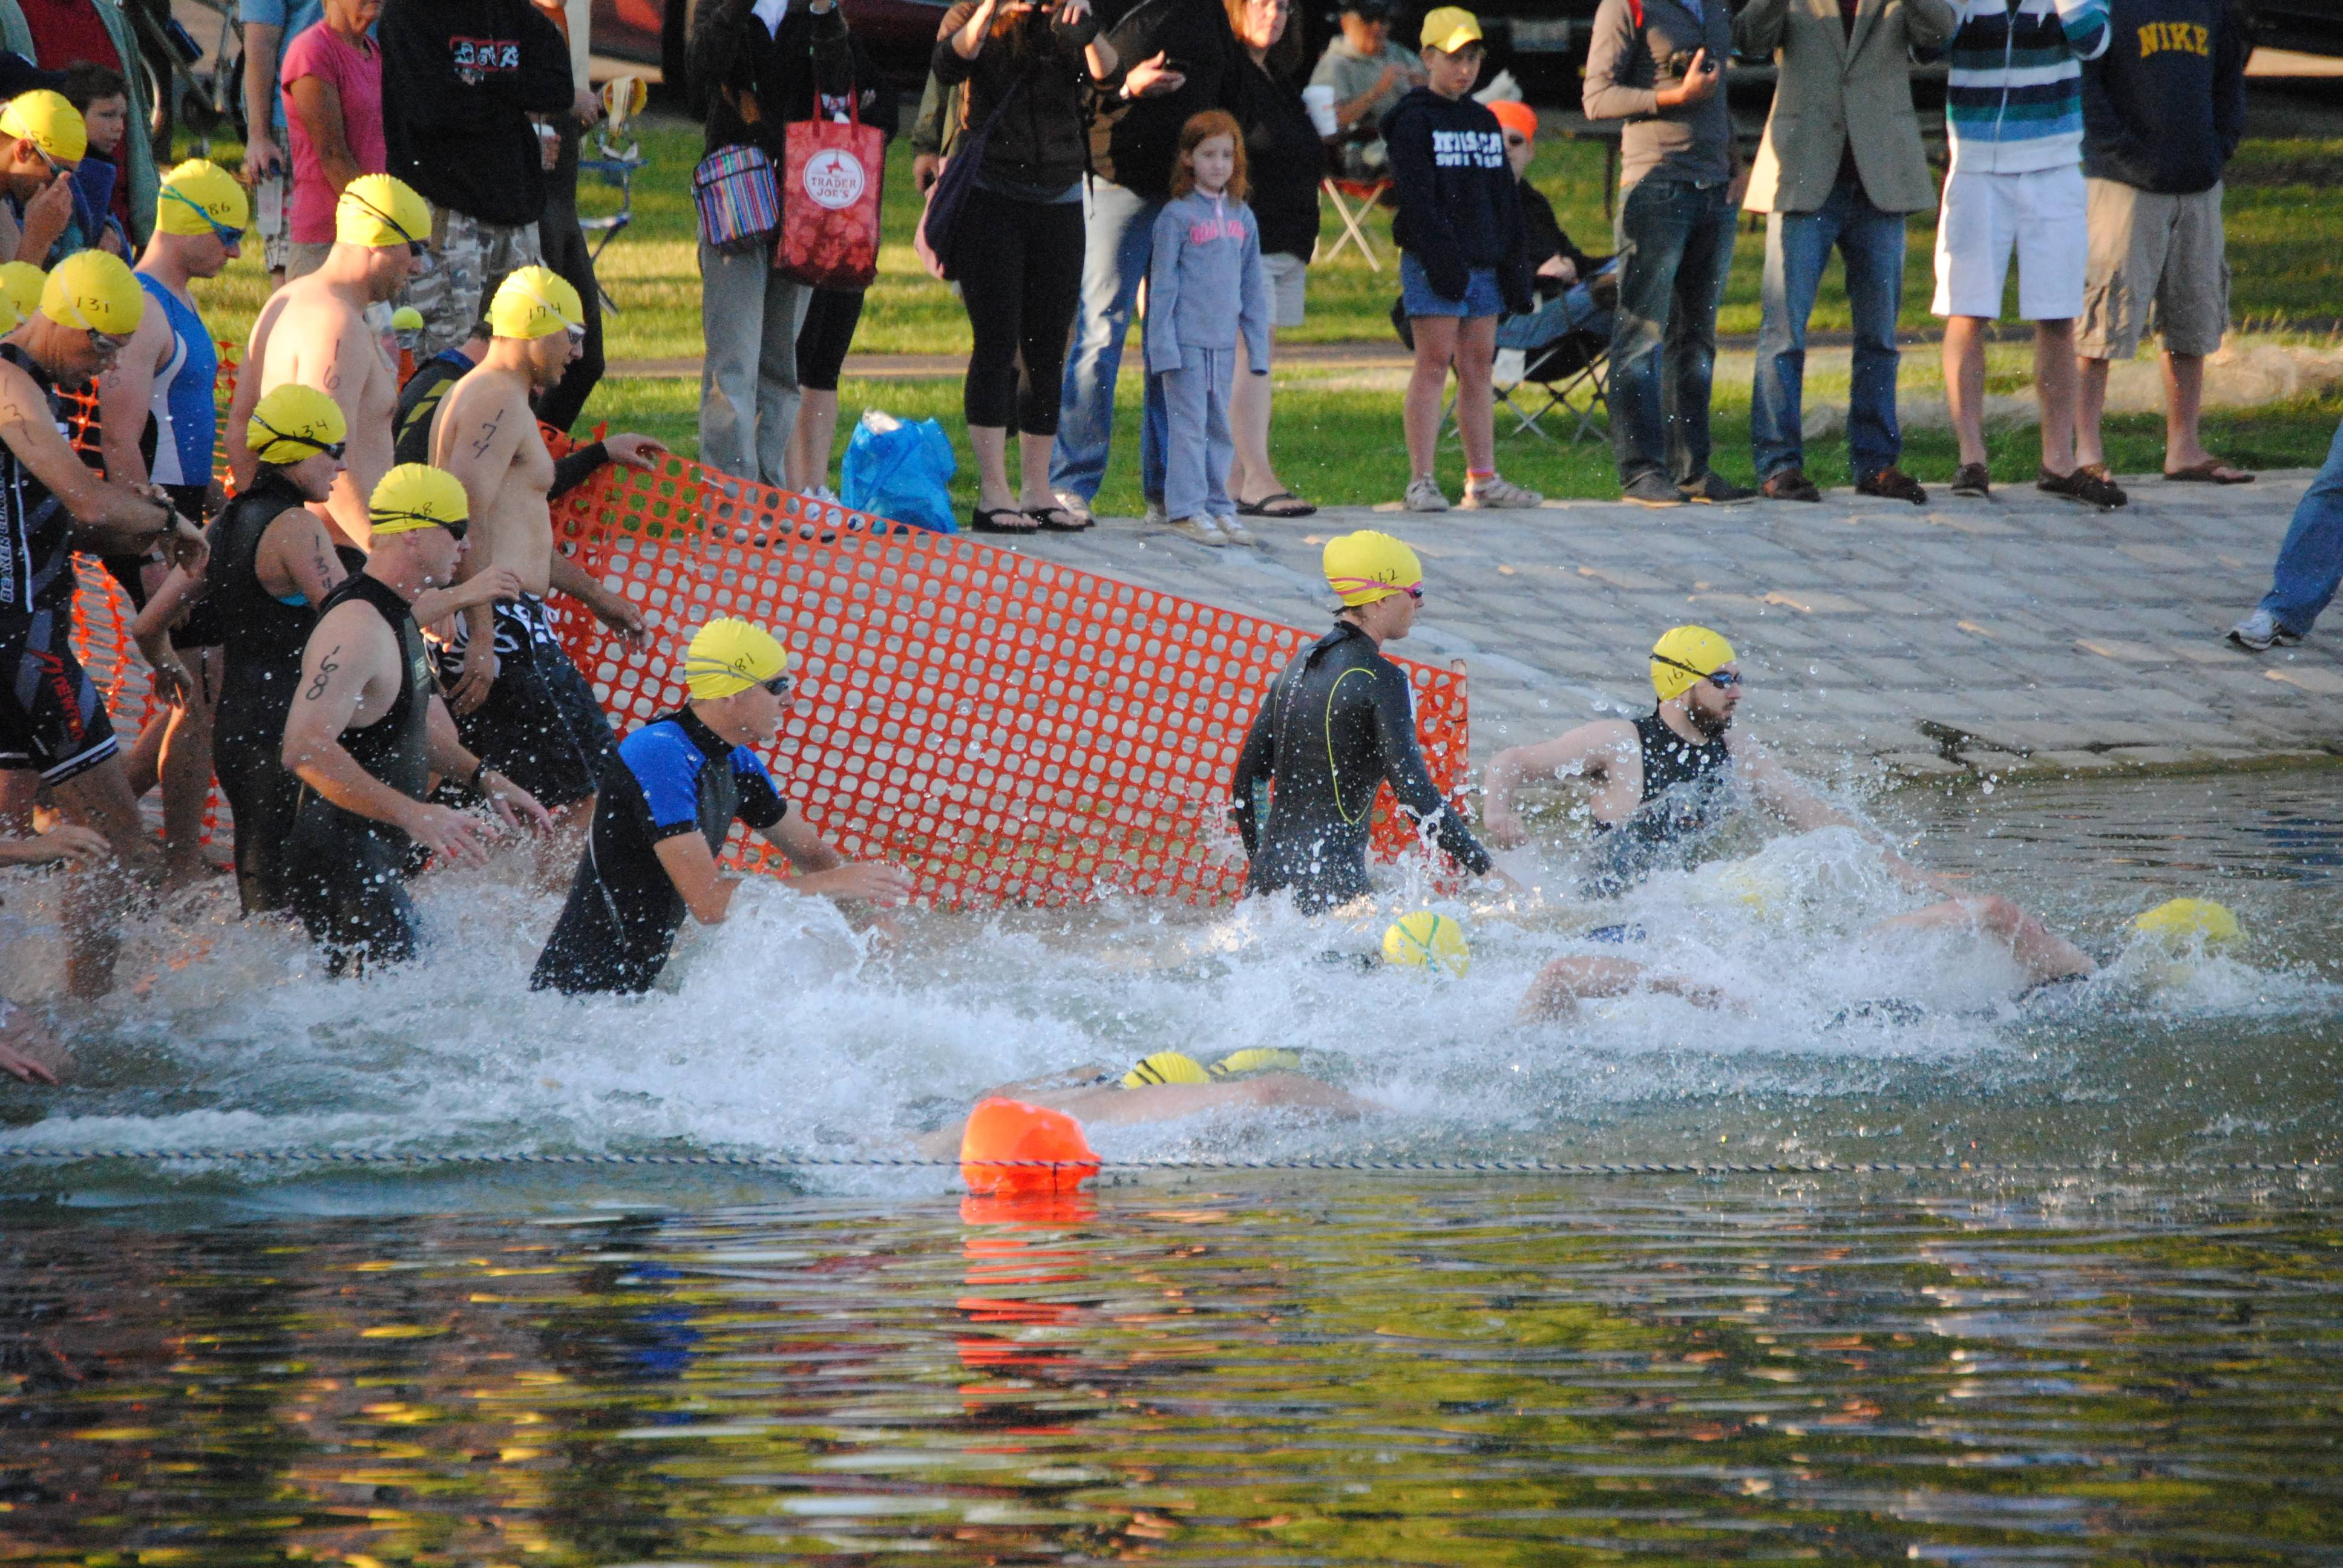 Triathletes jump into the water at Twin Lakes, the first leg of the 2013 triathlon.